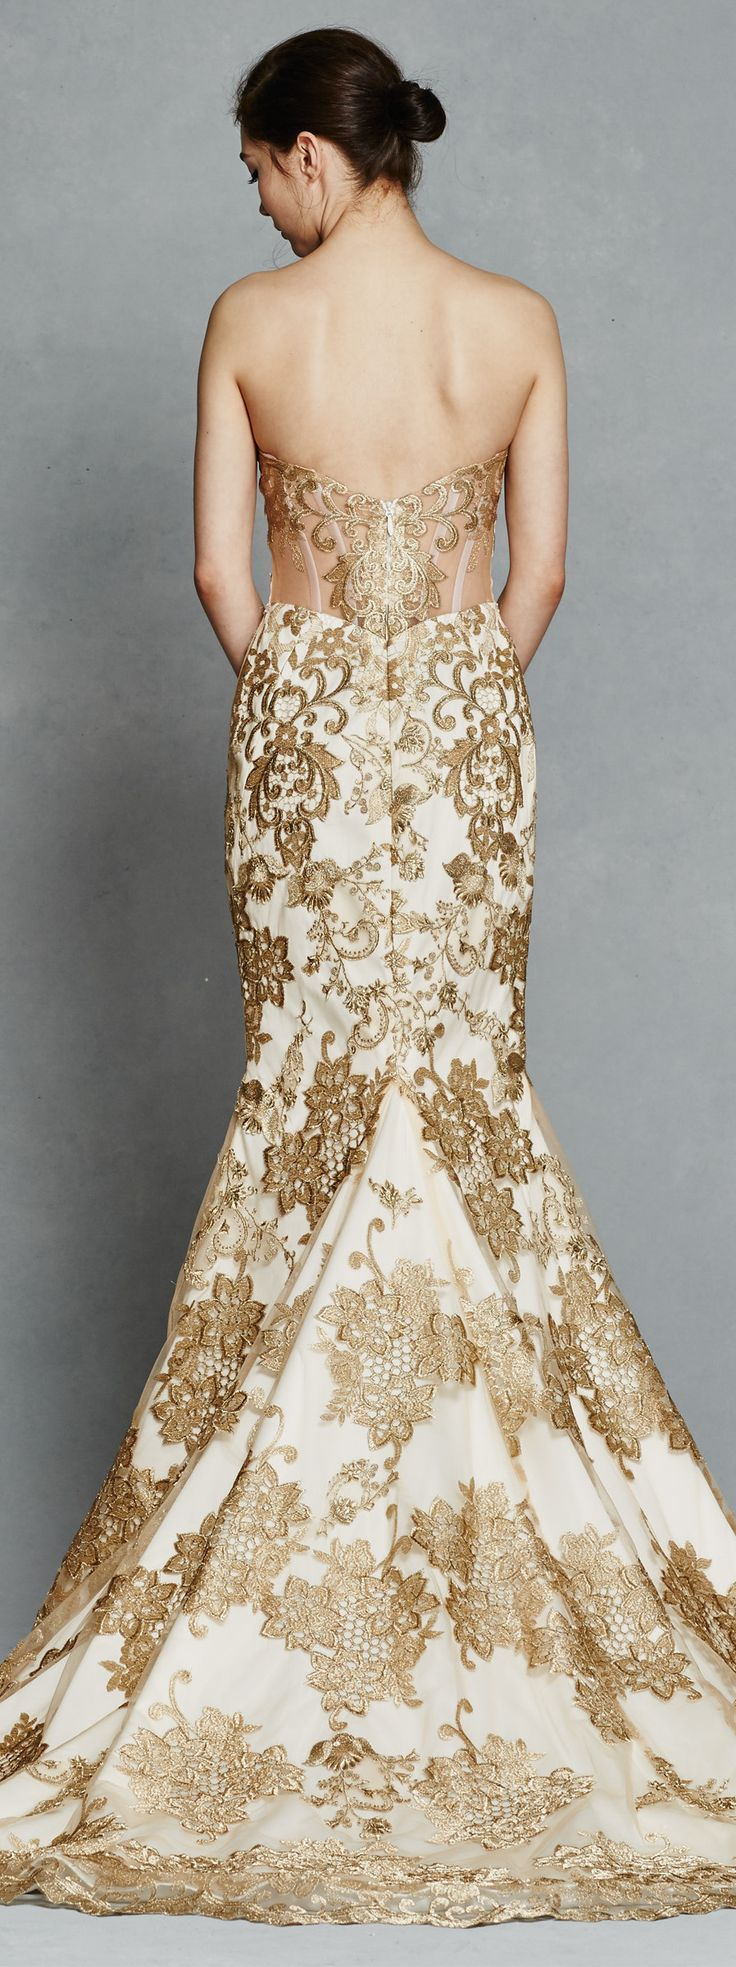 1000 ideas about Gold Wedding Dresses on Pinterest  Gold Weddings Gold Wedding Gowns and